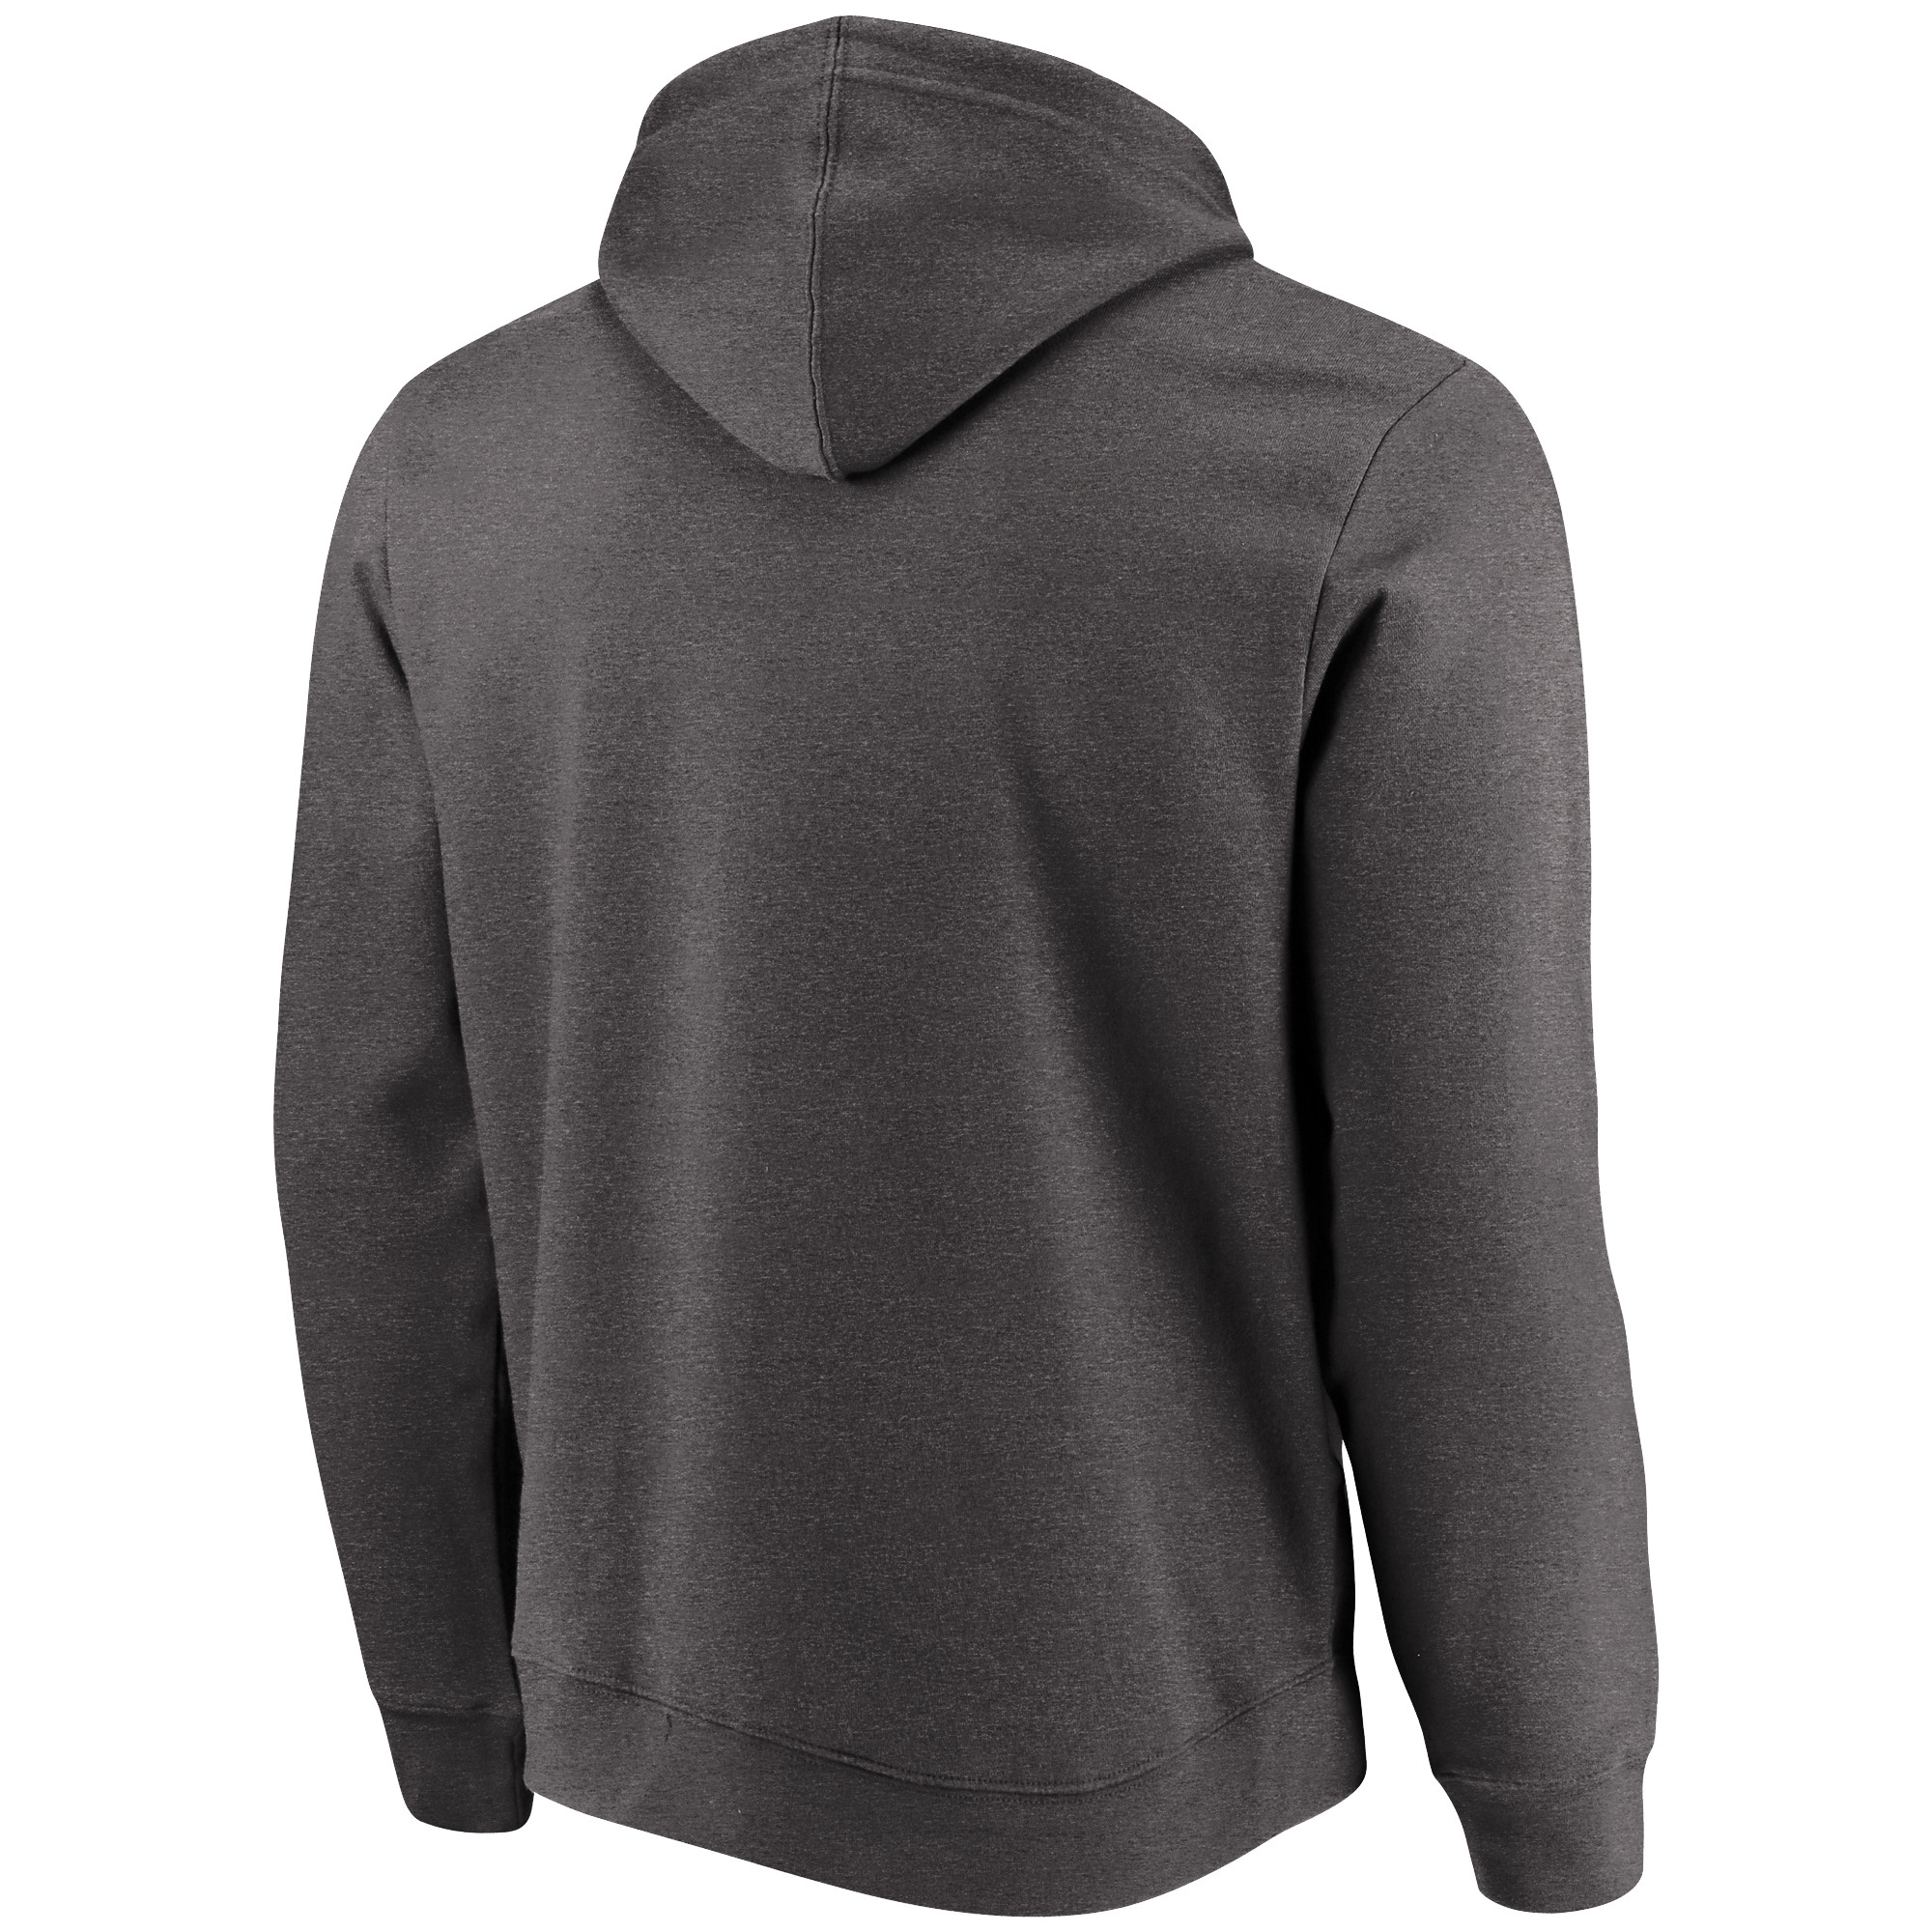 finest selection 91cac 8565d Carolina Panthers Majestic Big & Tall Line of Scrimmage Pullover Hoodie -  Heathered Charcoal